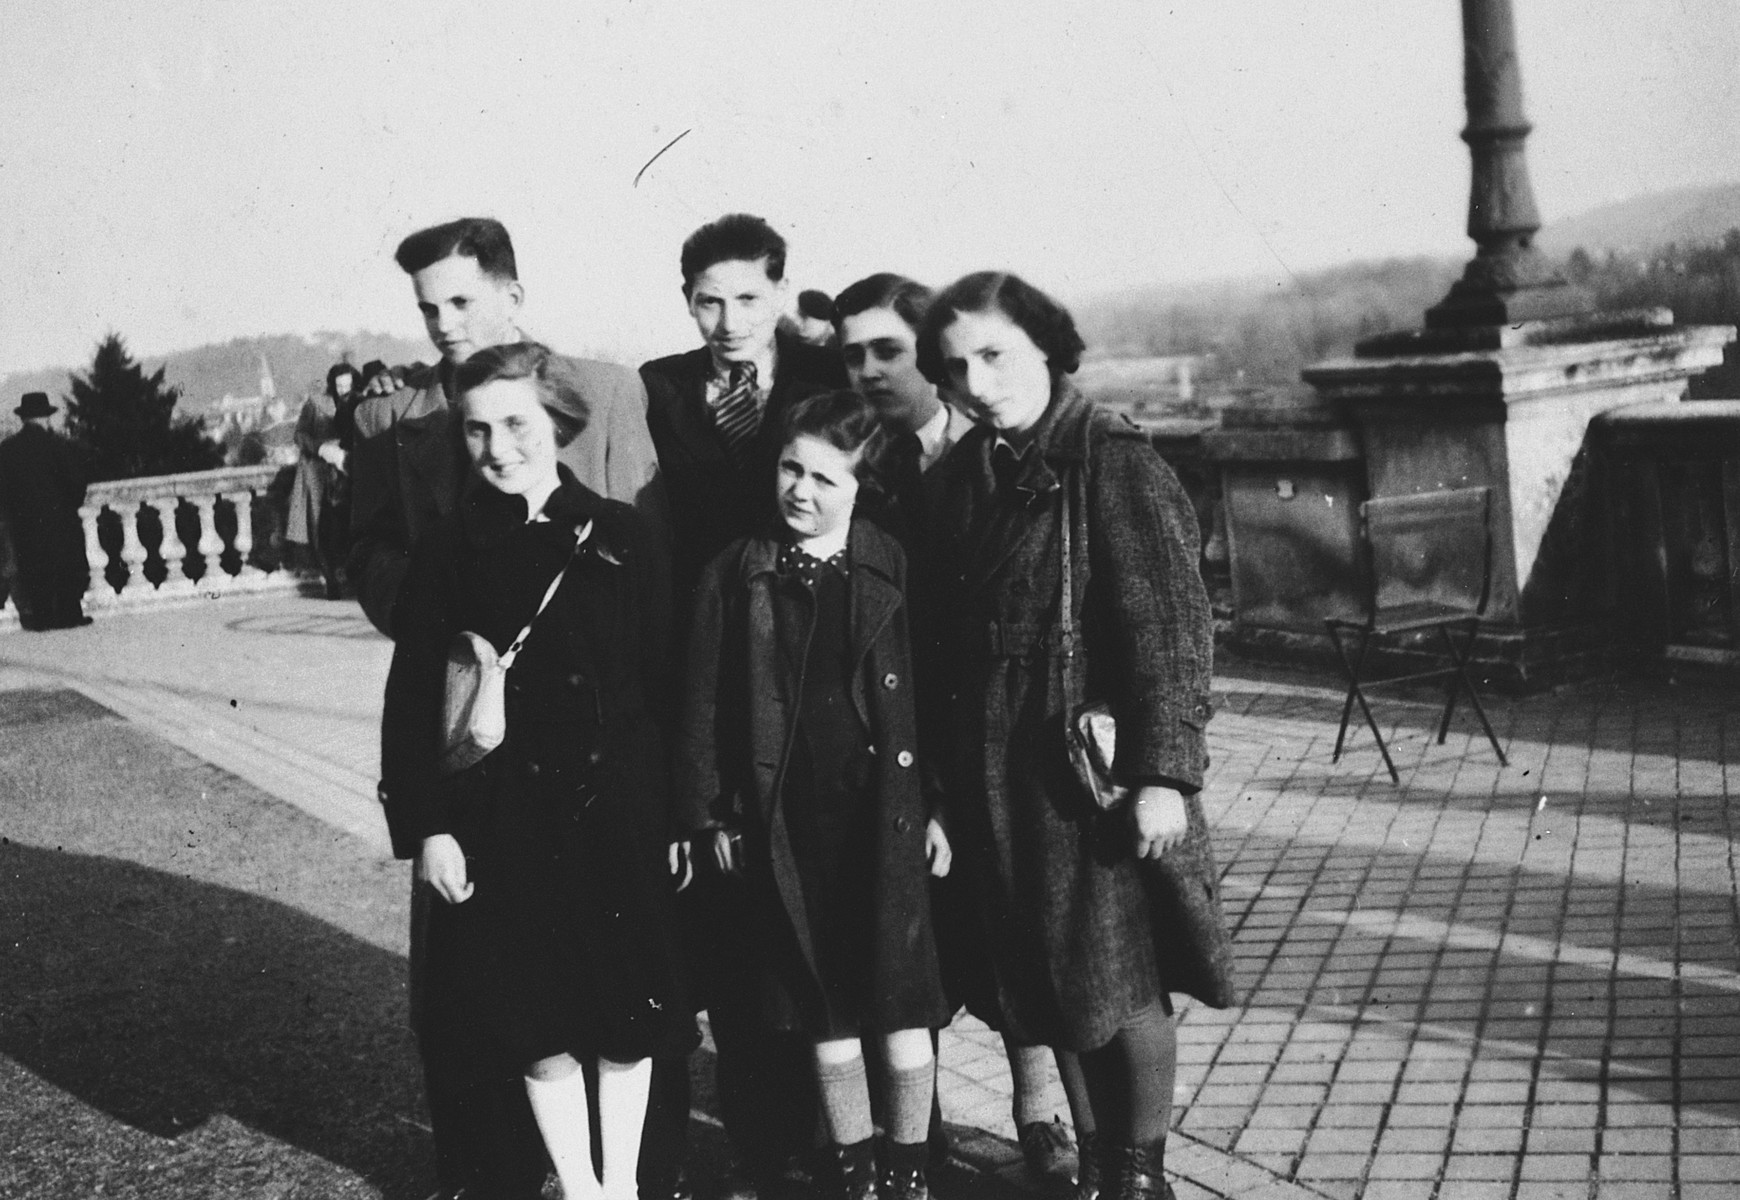 Children from La Guette children's home pose for a group portrait in a plaza in Pau while on route to visit their parents in the Gurs concentration camp.  Among those pictured is Ruth Strauss.